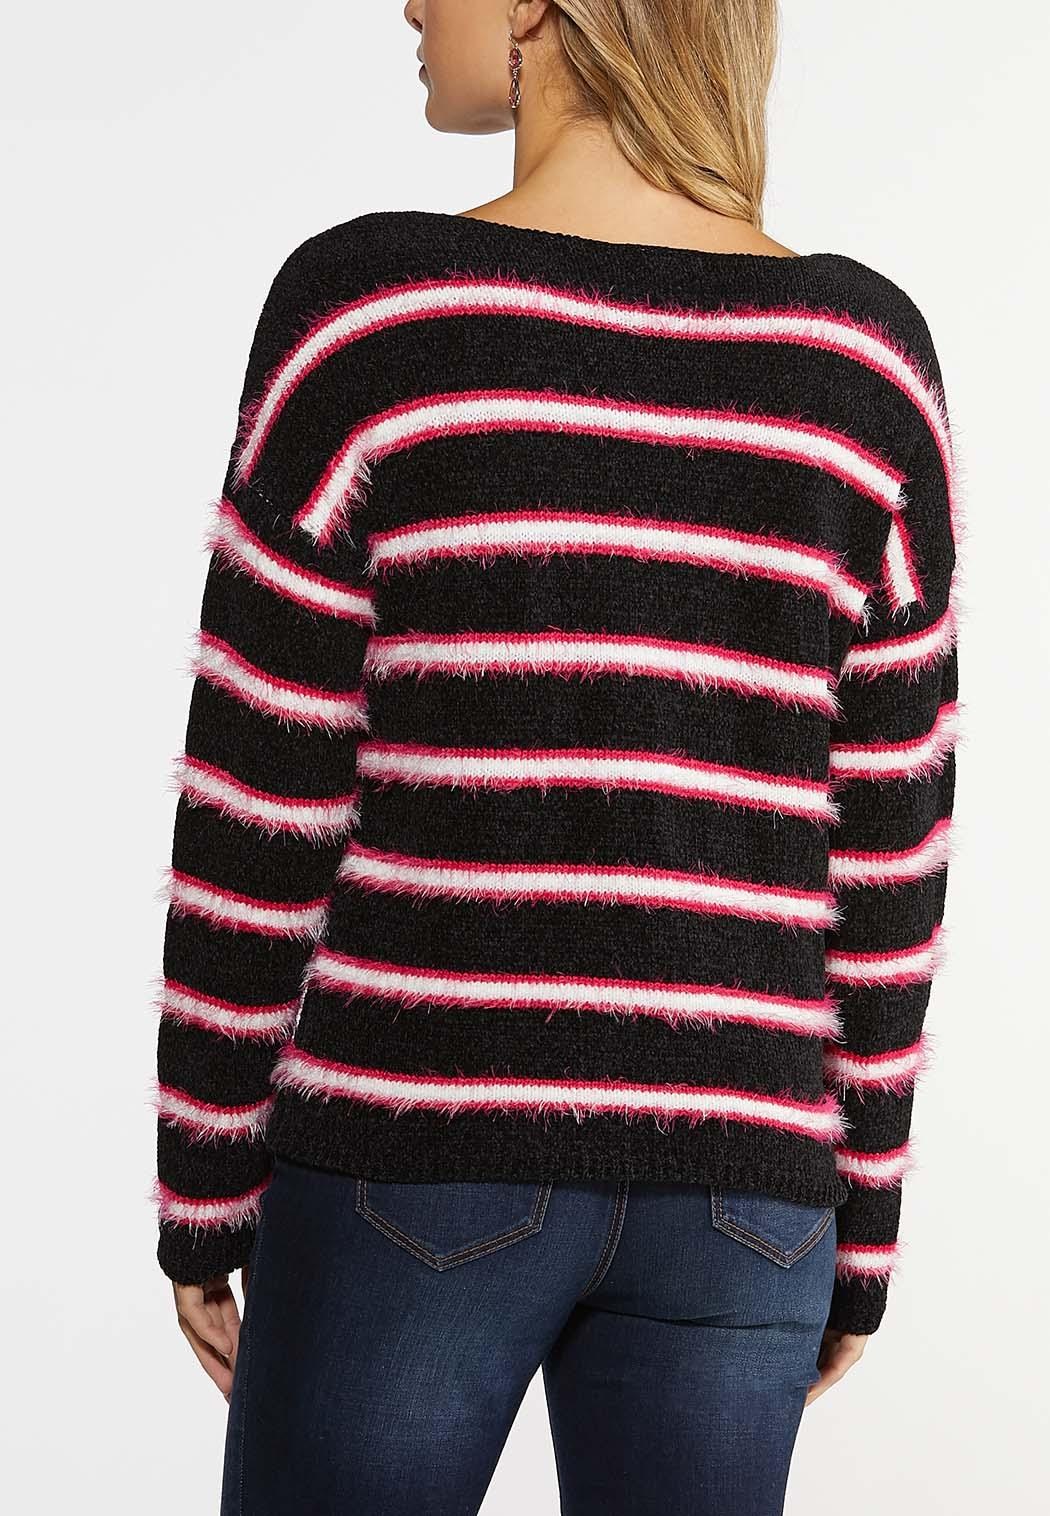 Fringe Stripe Sweater (Item #43990657)